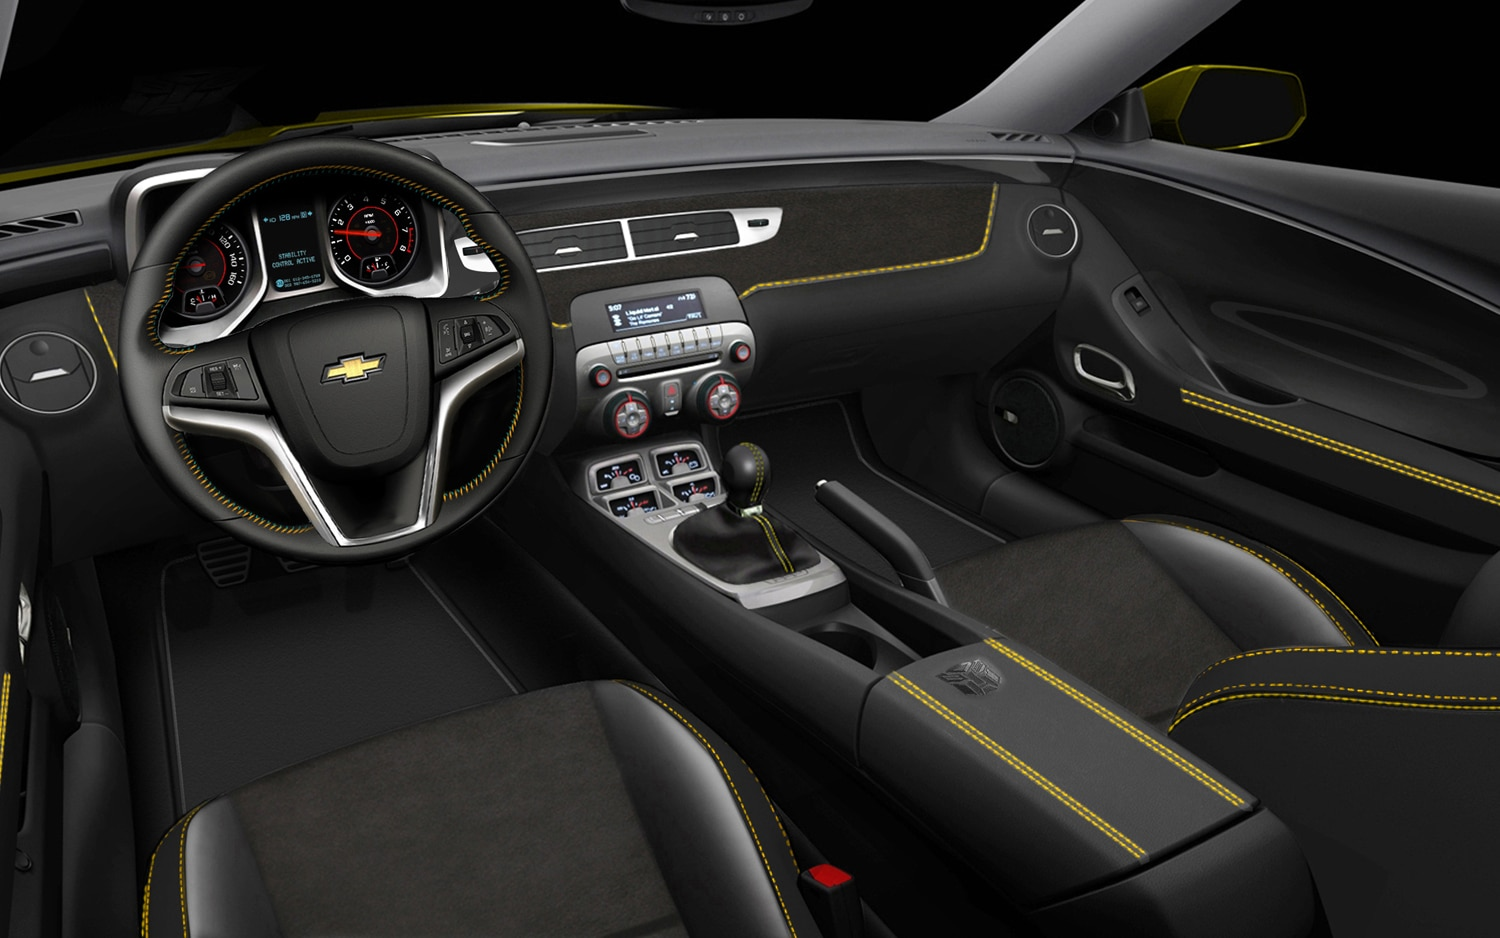 Camaro 2012 chevrolet camaro rs : Bumblebee is Back: Chevrolet Launches New Transformers Edition ...